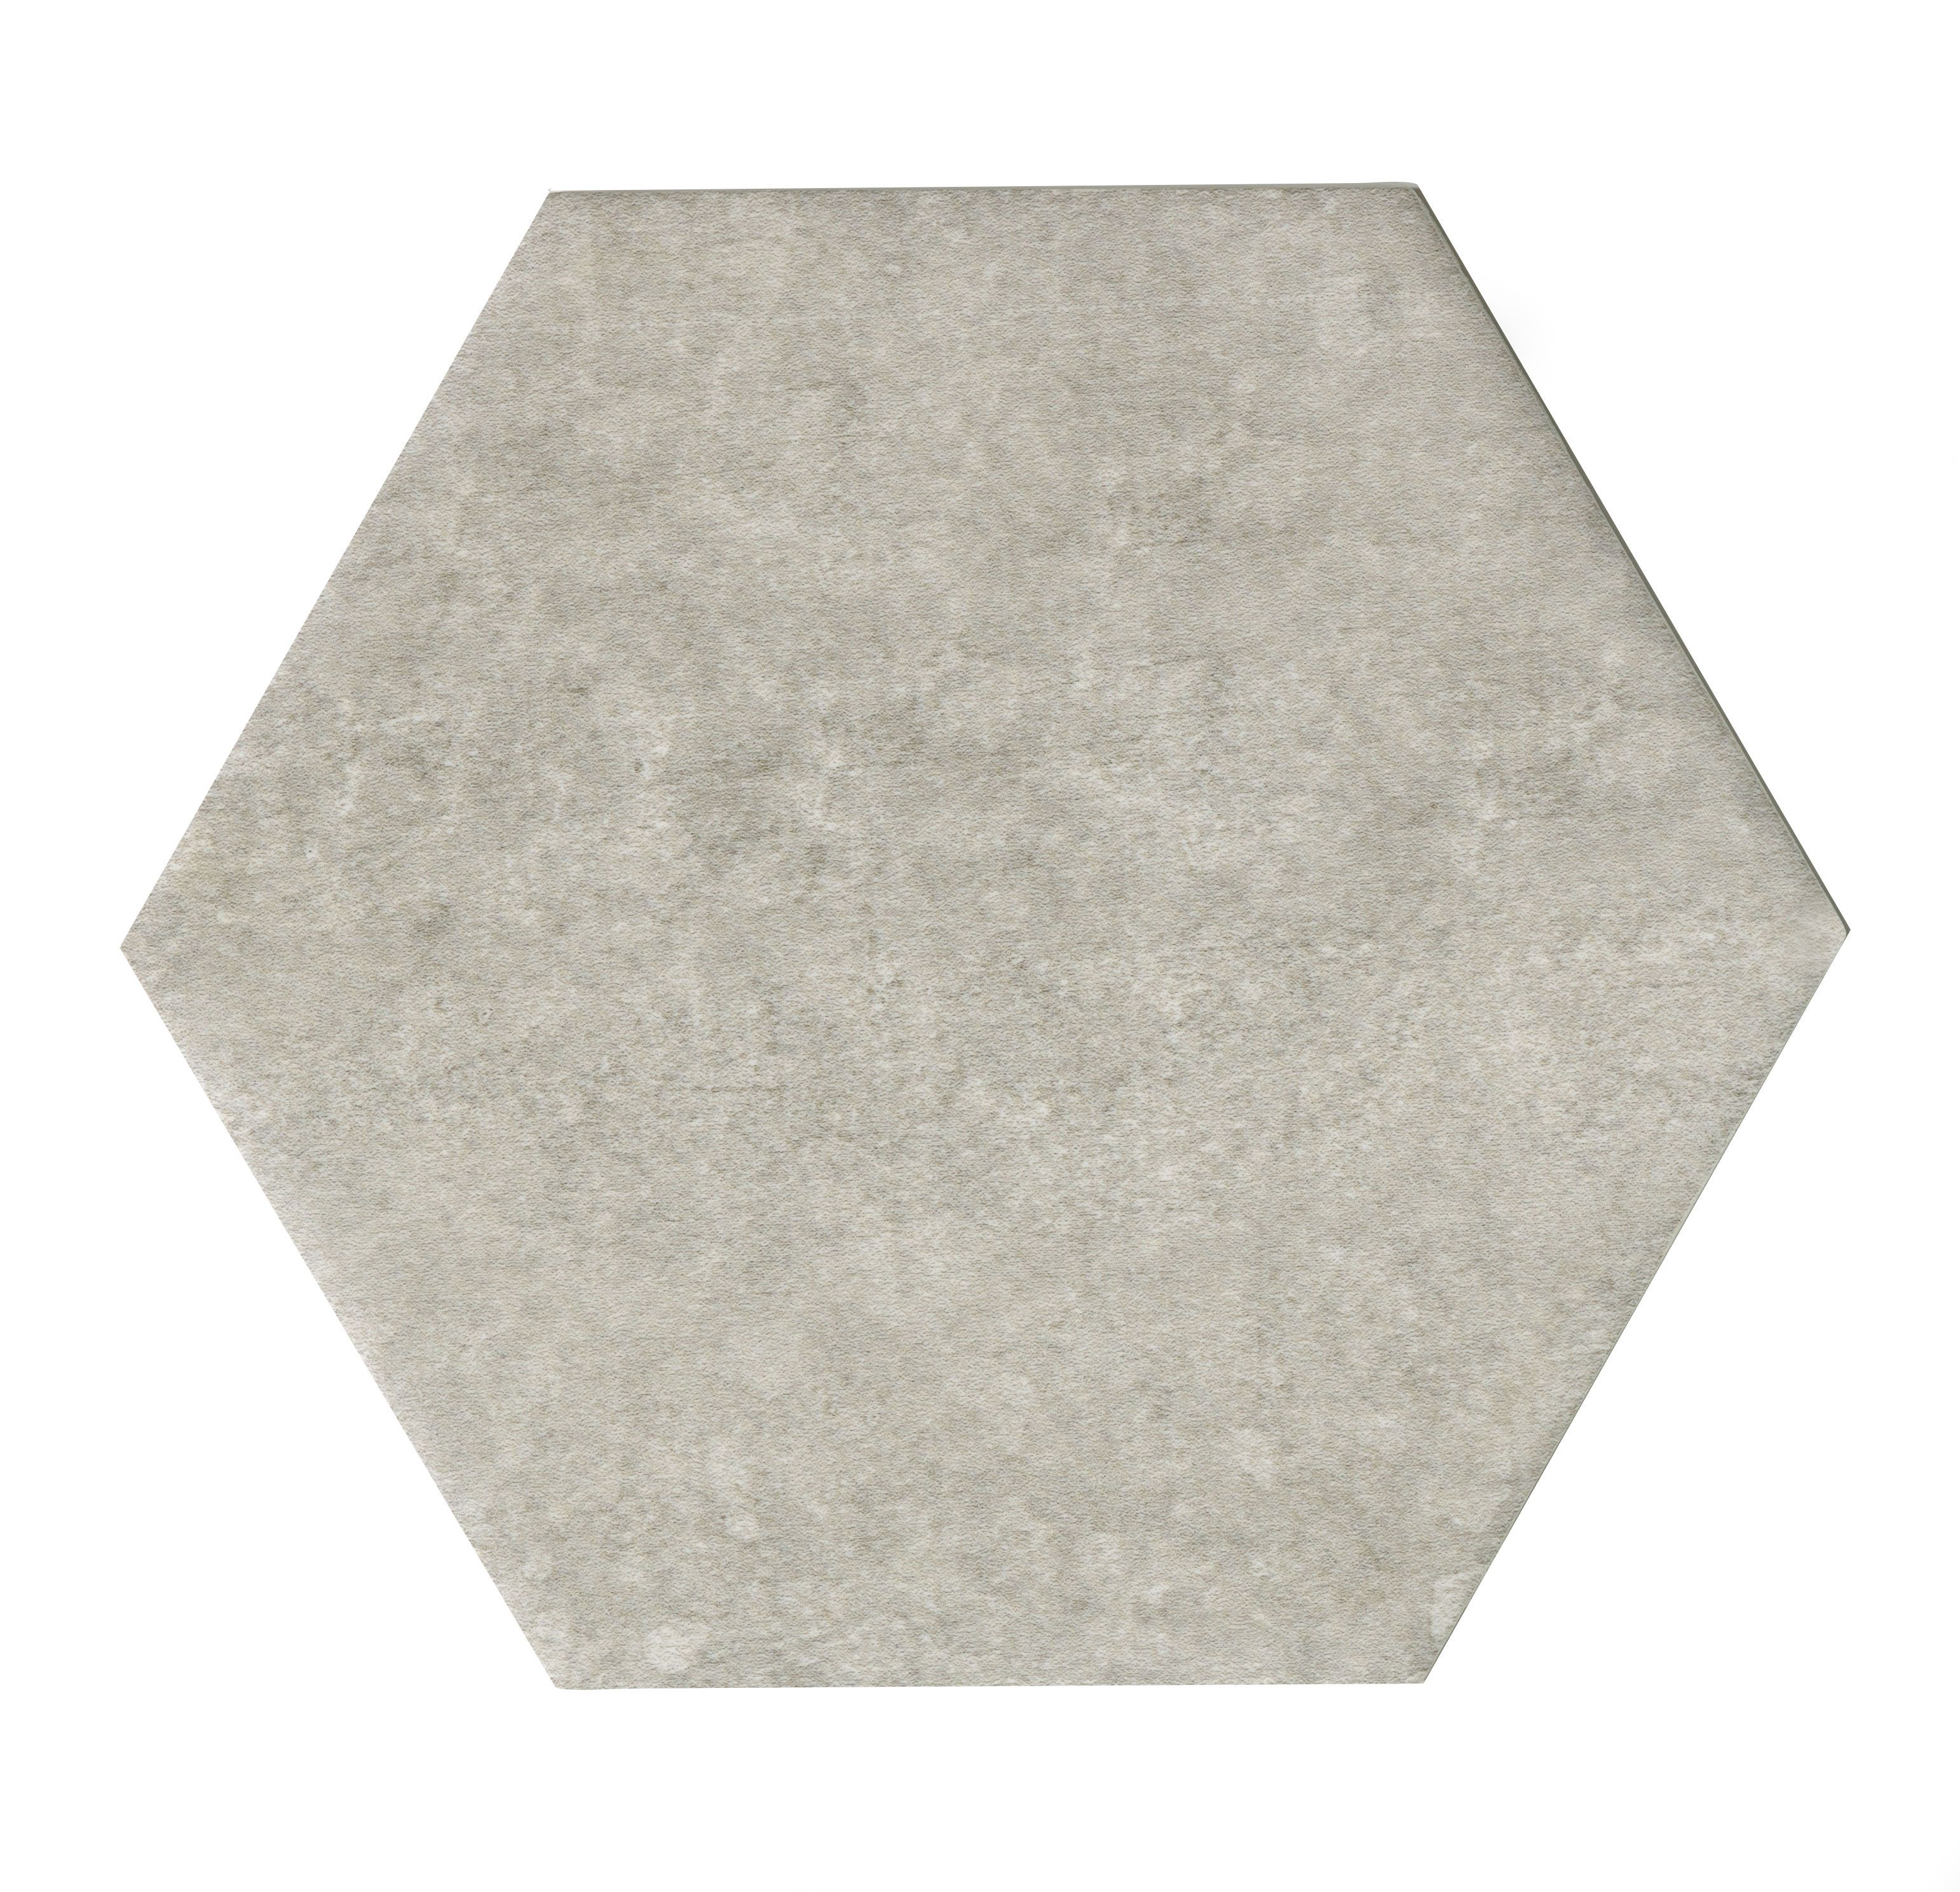 Urban Grey Stone Effect Concrete Effect Hexagon Ceramic Wall Tile, Pack Of 50, (l)150mm (w)173mm